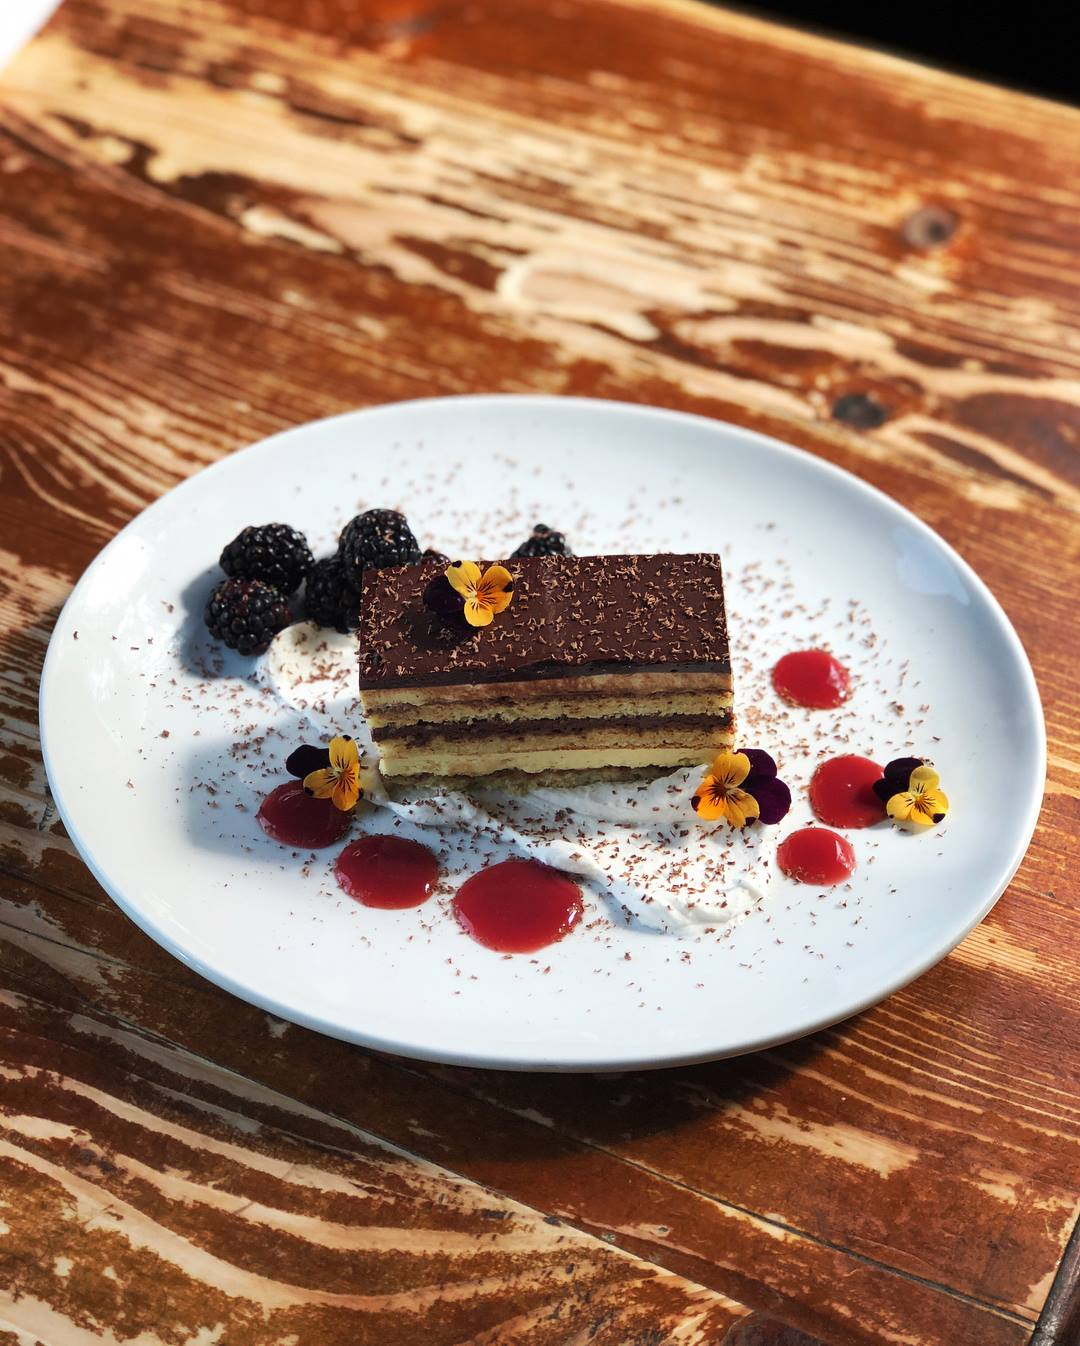 opera cake: pink peppercorn spongecake • chocolate-balsamic syrup • almond buttercream • chocolate-balsamic ganache • chocolate-red wine glaze • pink peppercorn chantilly cream • strawberry-port gel